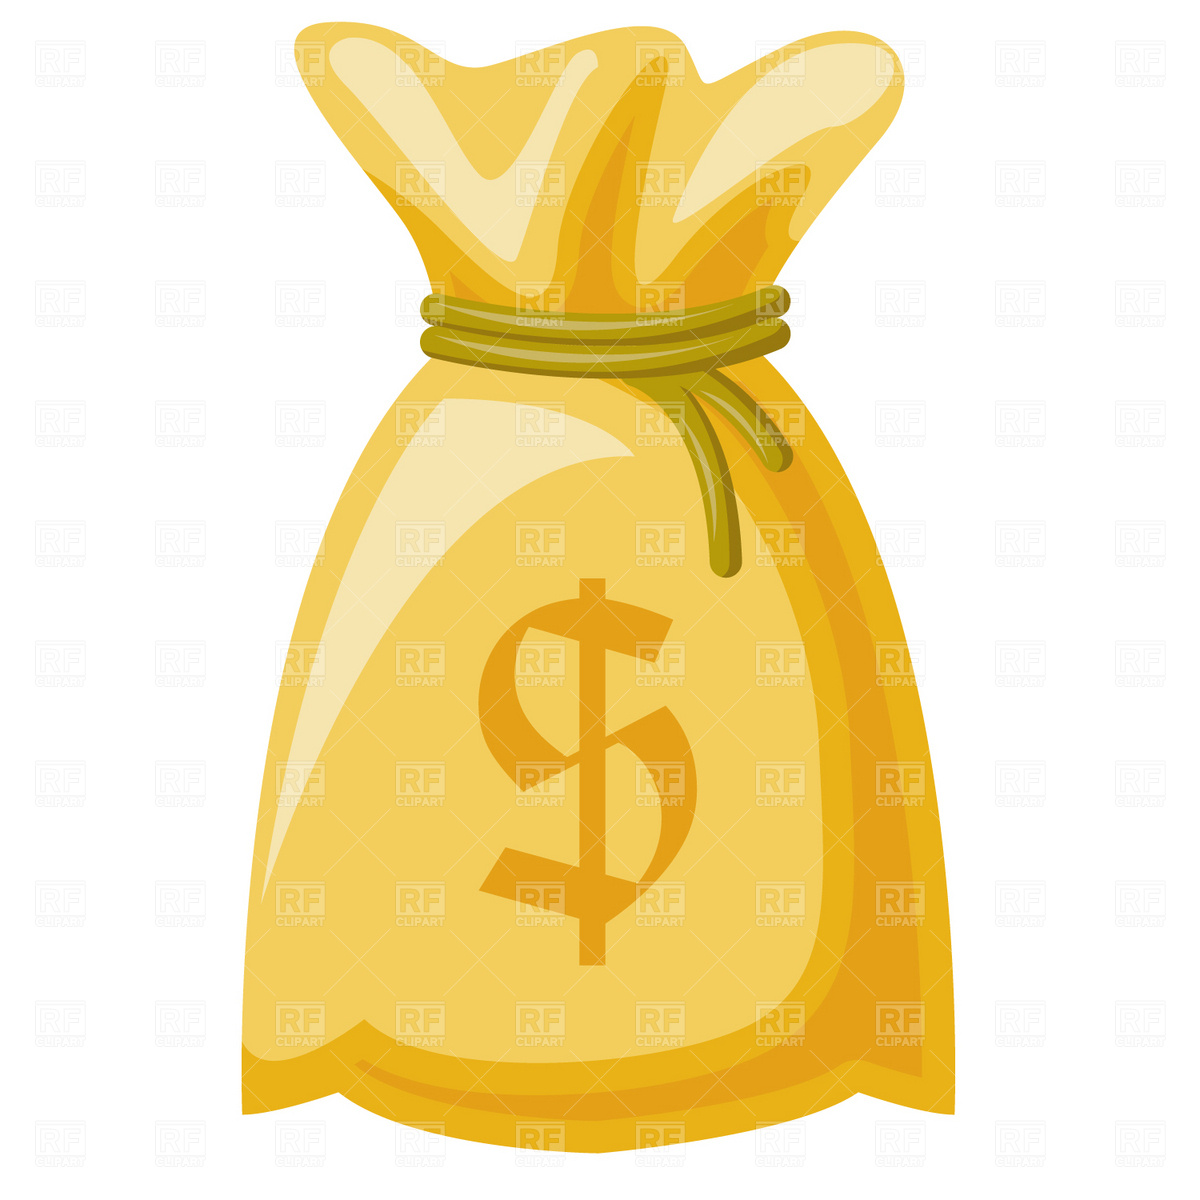 Money sack with currency sign and coins Vector Image #7002.